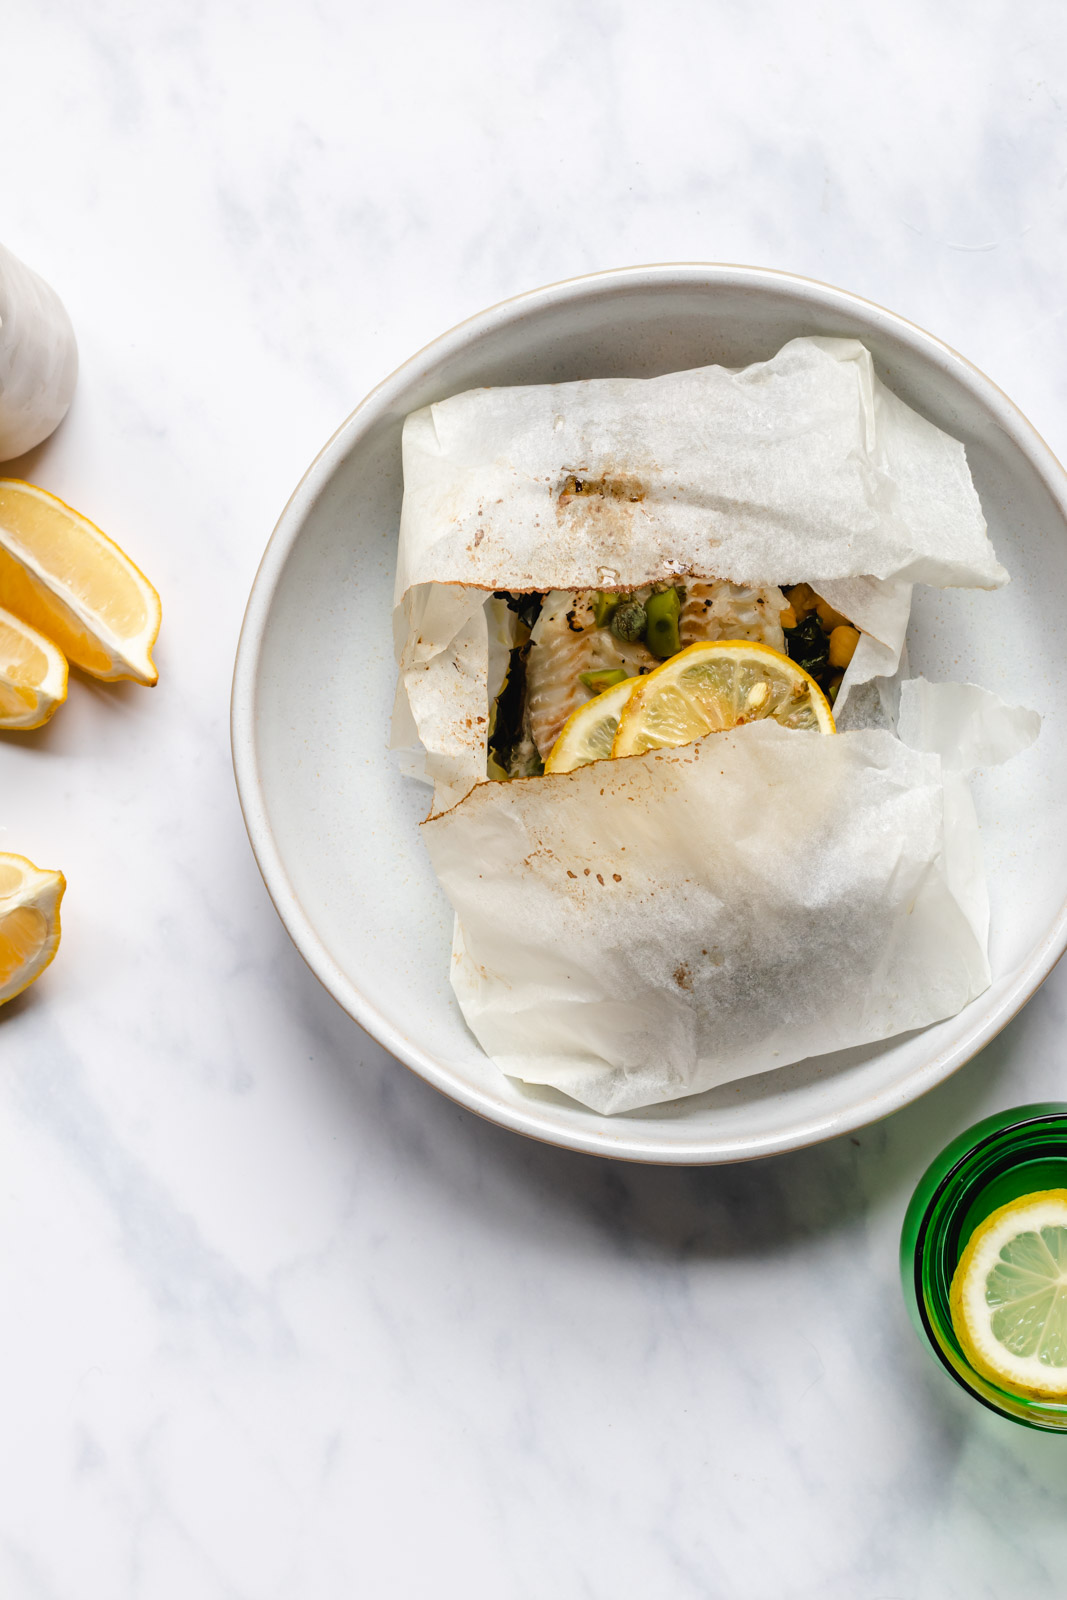 White fish en papillote with beans, greens and anchovy butter sauce in a large ceramic deep plate surrounded by lemon wedges, a glass of water and extra sauce